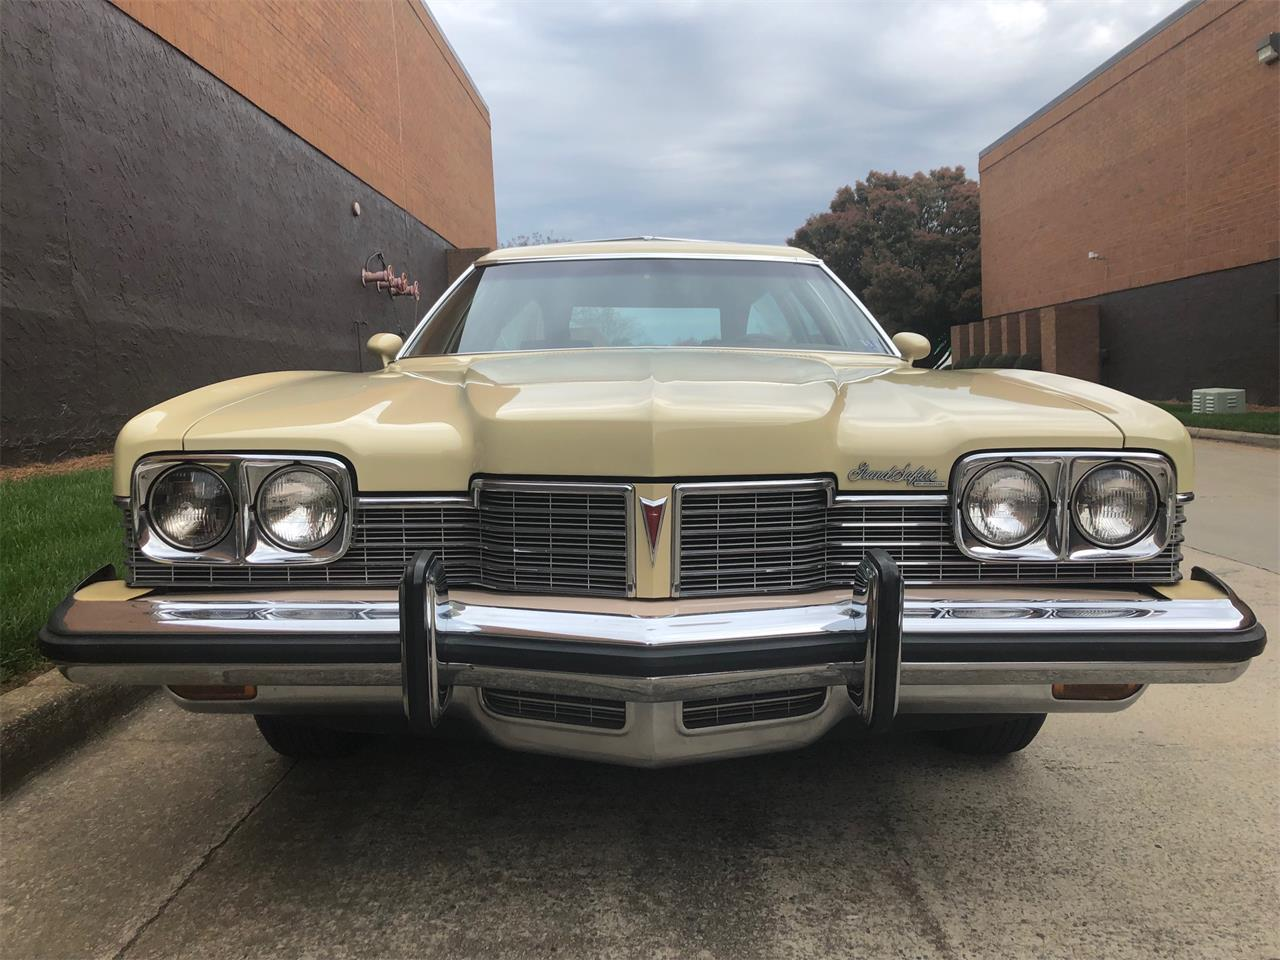 1973 Pontiac Safari (CC-1218876) for sale in Norcross, Georgia